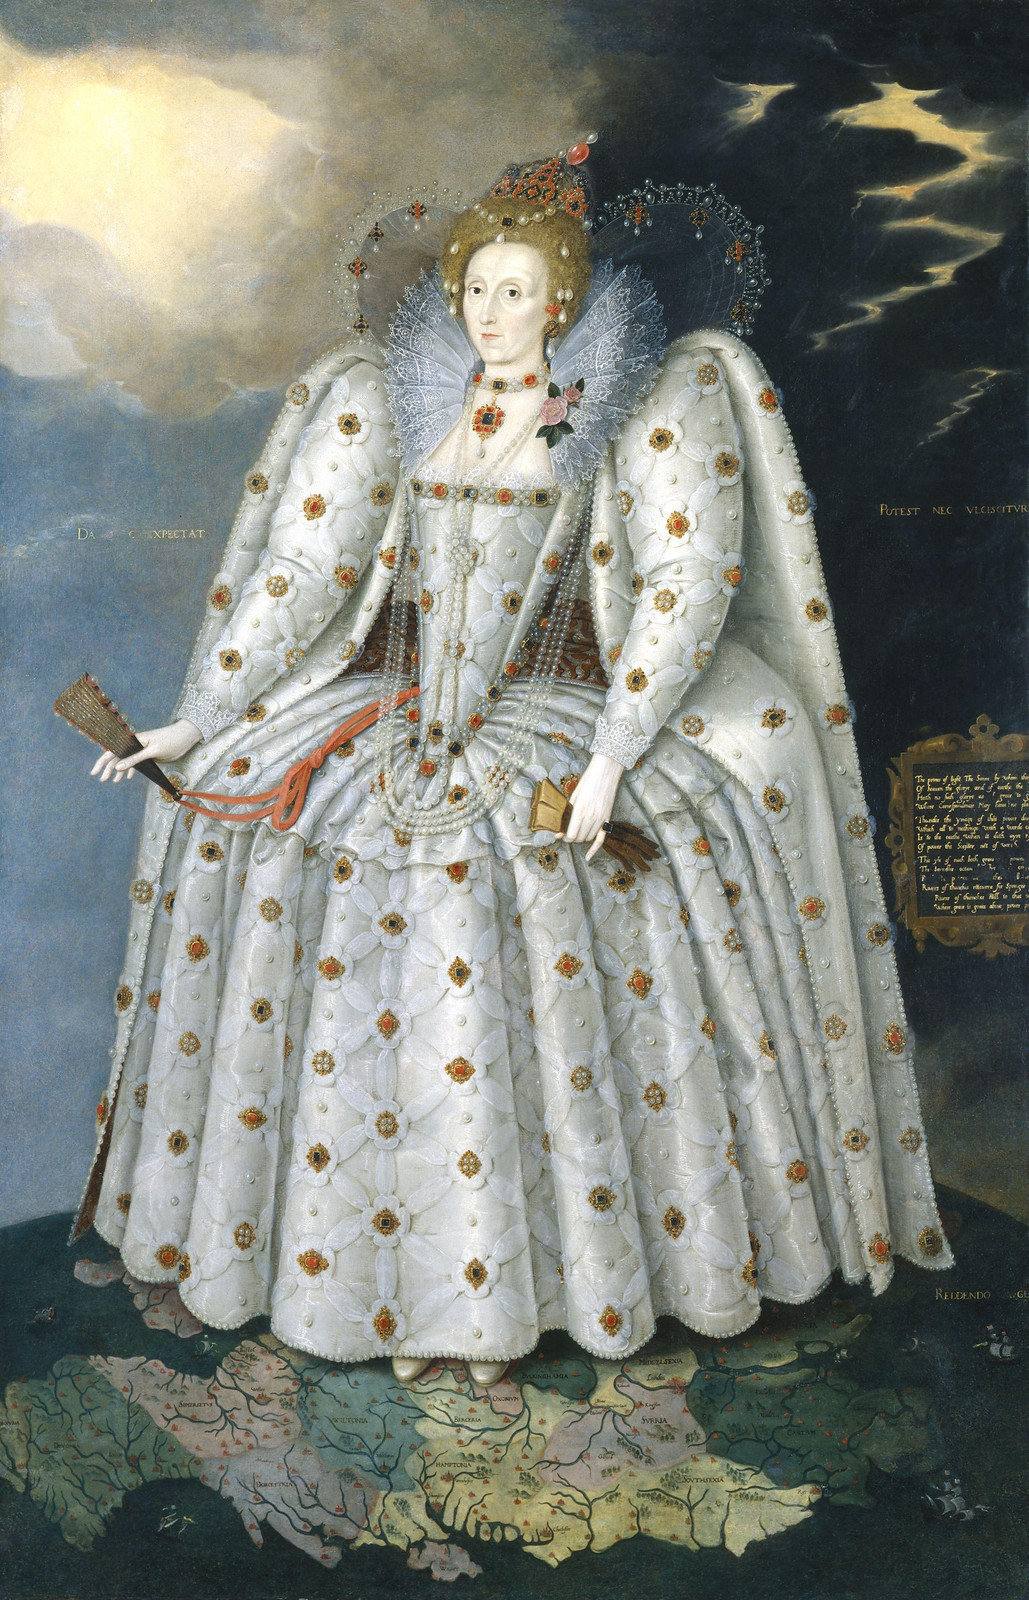 Queen Elizabeth I ('The Ditchley portrait') by Marcus Gheeraerts the Younger, 1592.